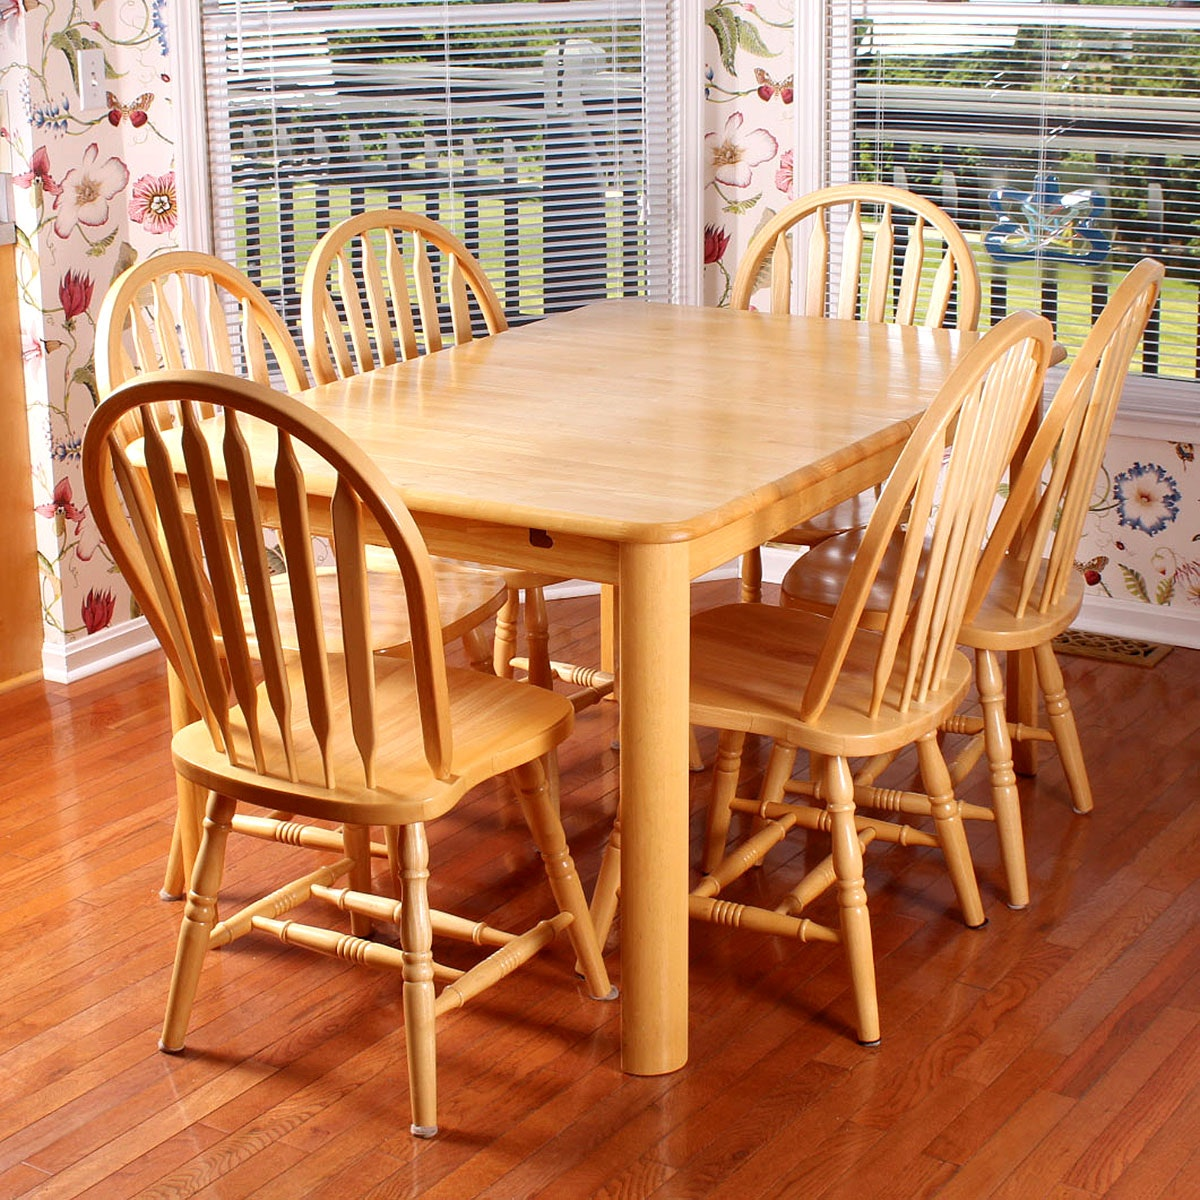 Maple Kitchen Table With Chair And Bench Ebth: Light Maple Dining Table And Windsor Style Chairs : EBTH